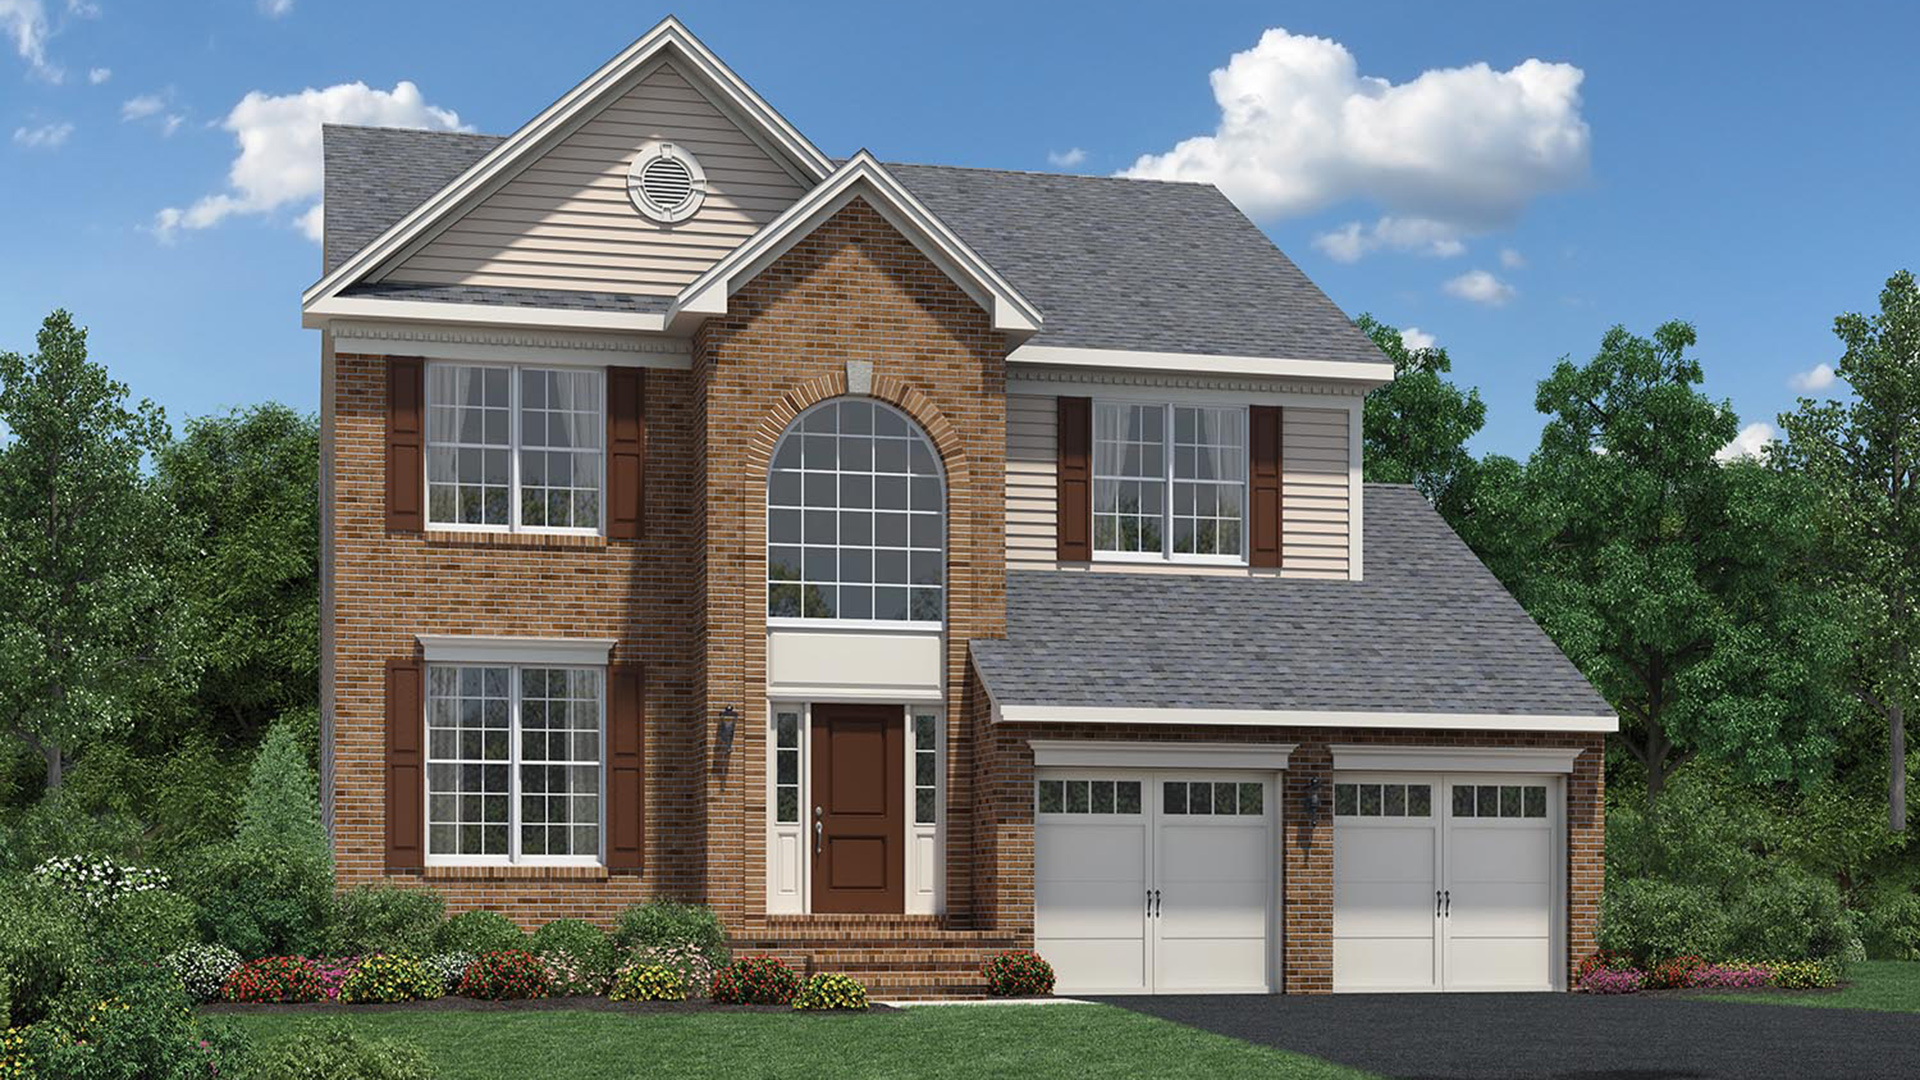 hopewell glen the gardens the montclaire home design montclaire